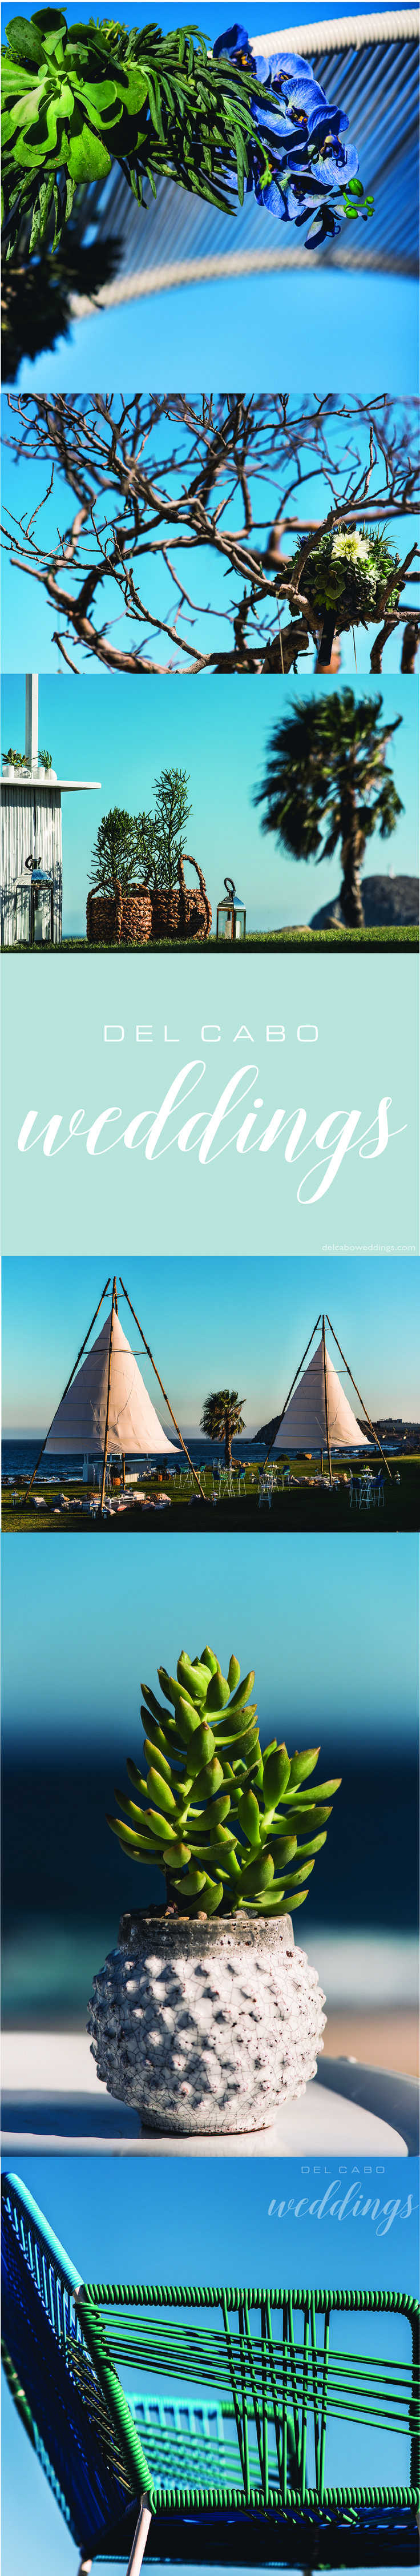 Baja wedding ideas! Cabo San Lucas is the best destination for your wedding in Mexico! Get décor ideas, inspiration for your nautical wedding!